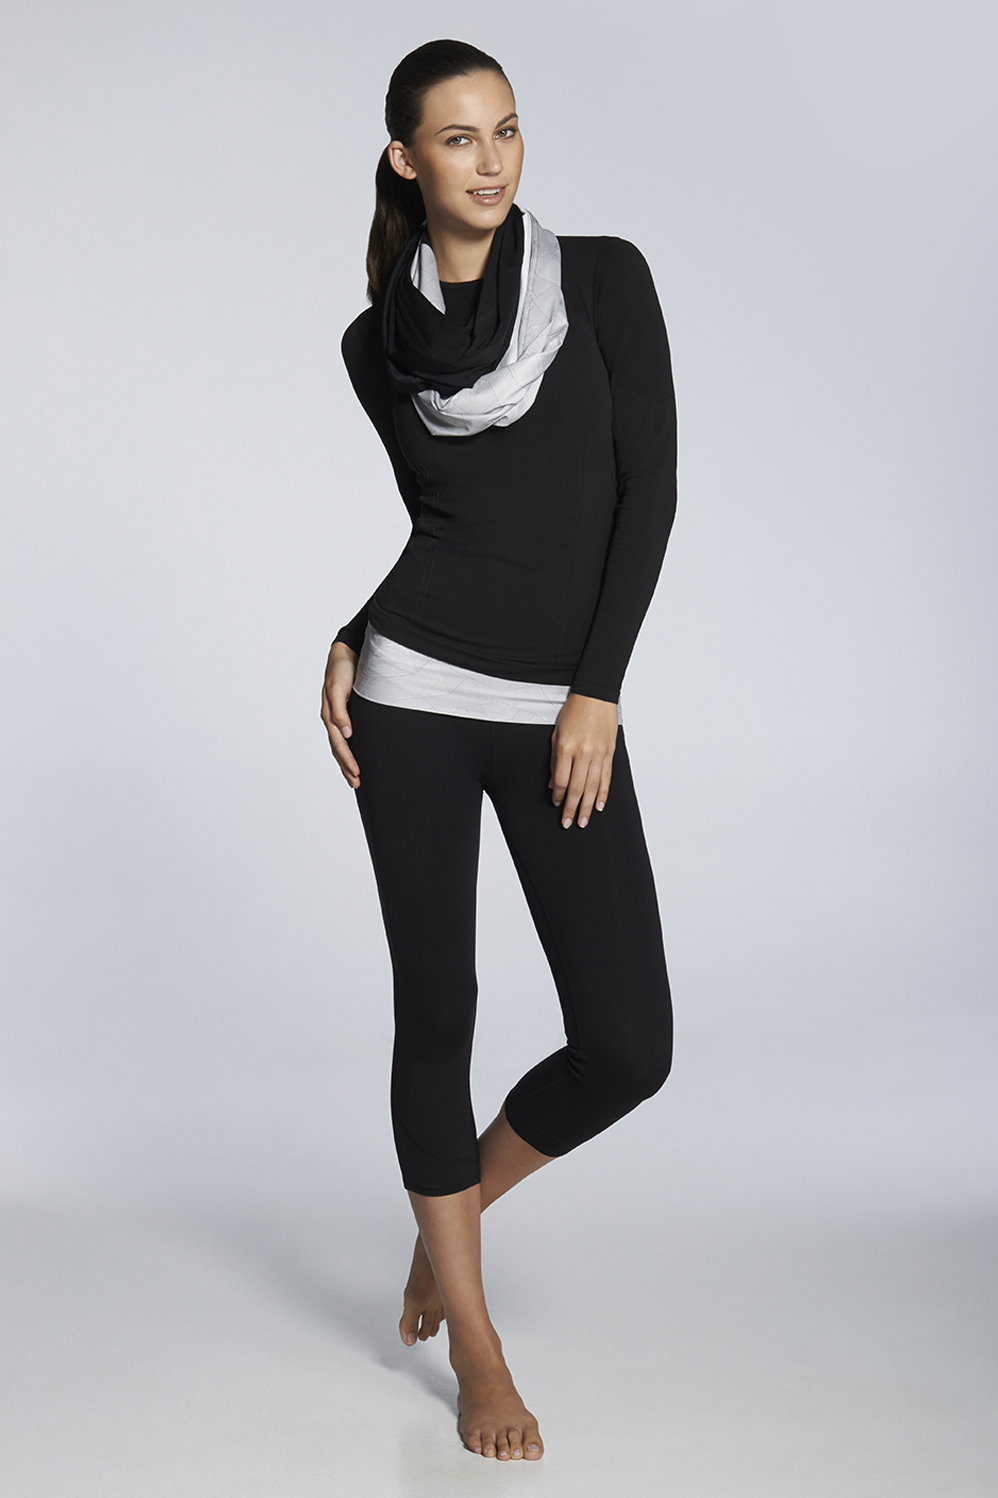 dress not for success fifty years How to style a sweater dress over 50  the success of a sweater dress for women over 50 involves fit,  i haven't worn a sweater dress in years,.